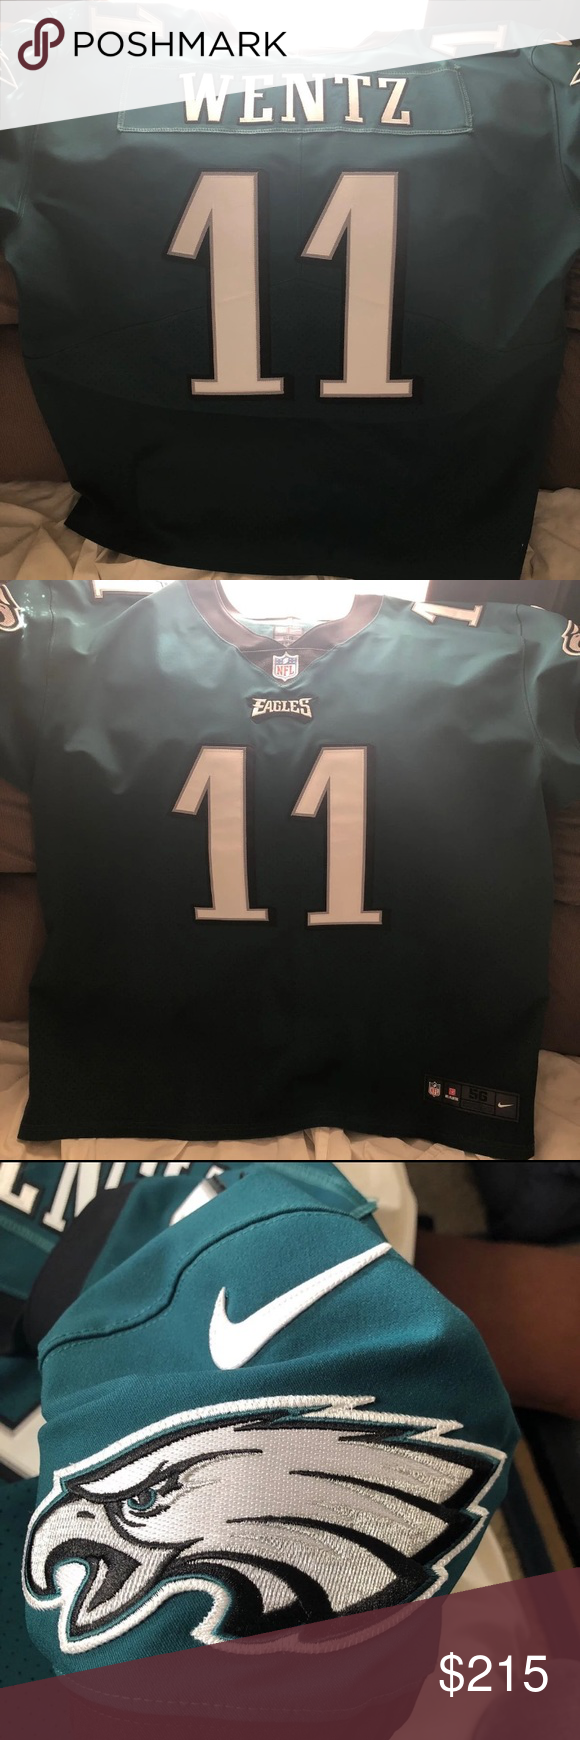 8a23f90e166 EAGLES CARSON WENTZ ELITE JERSEY Never worn Eagles Carson Wentz Elite Jersey!  Perfect condition! NFL Other